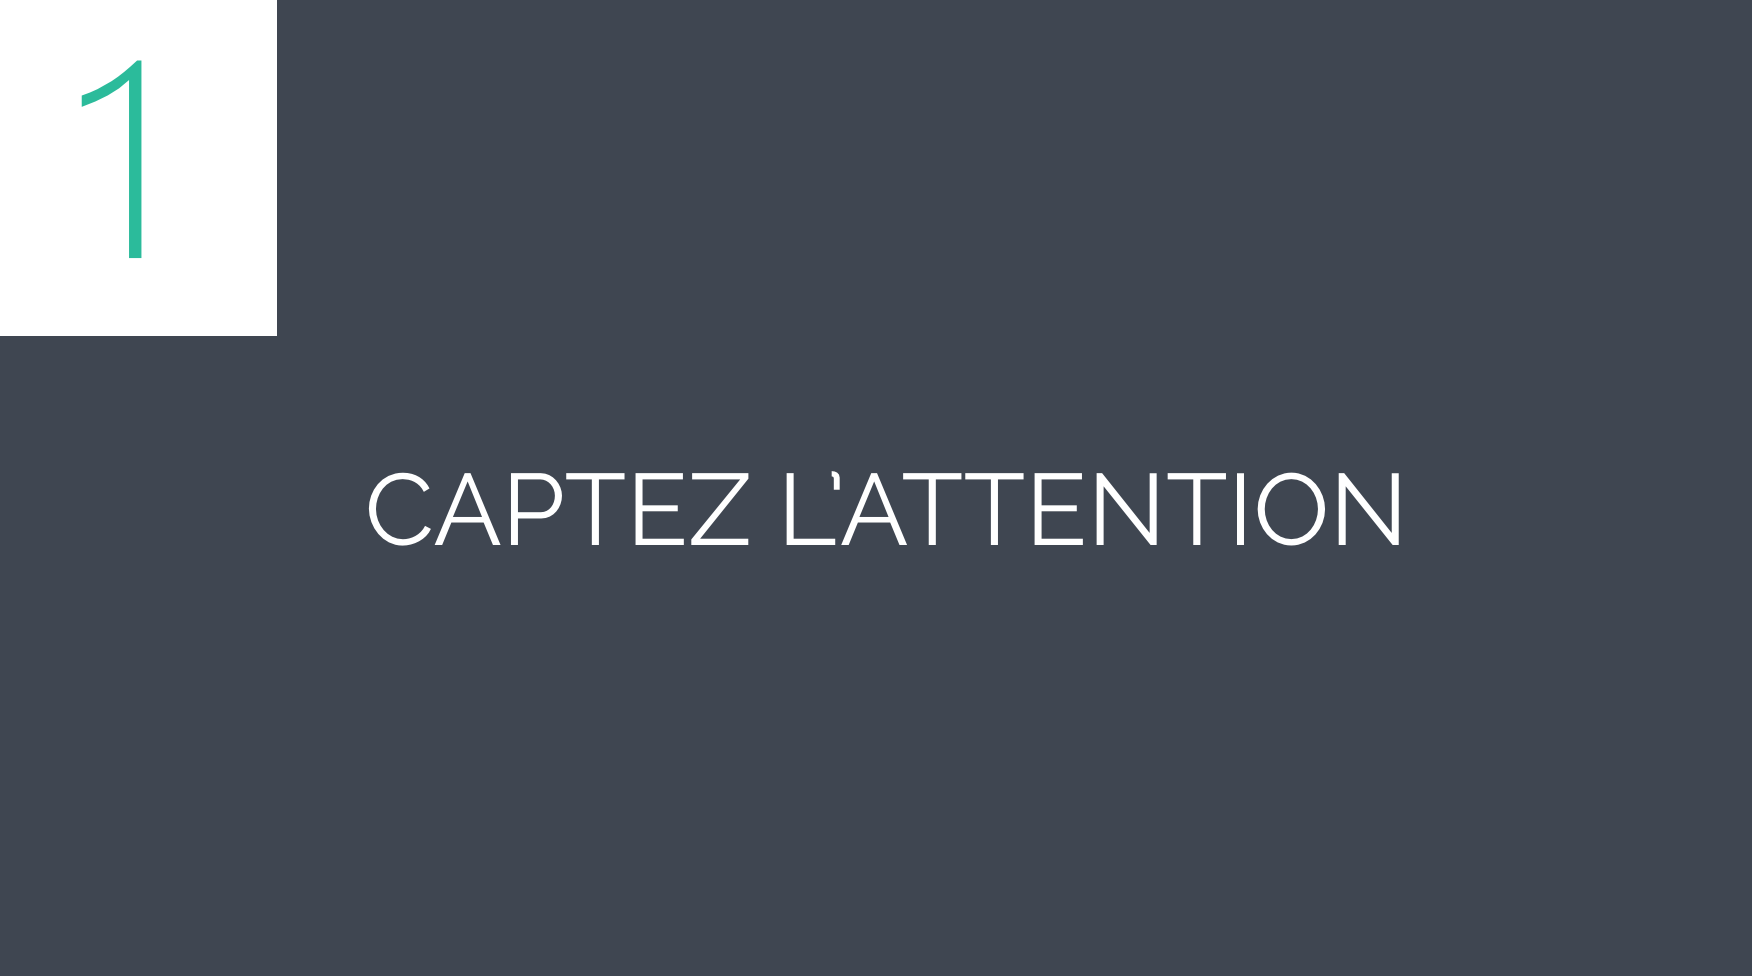 capter-l-attention